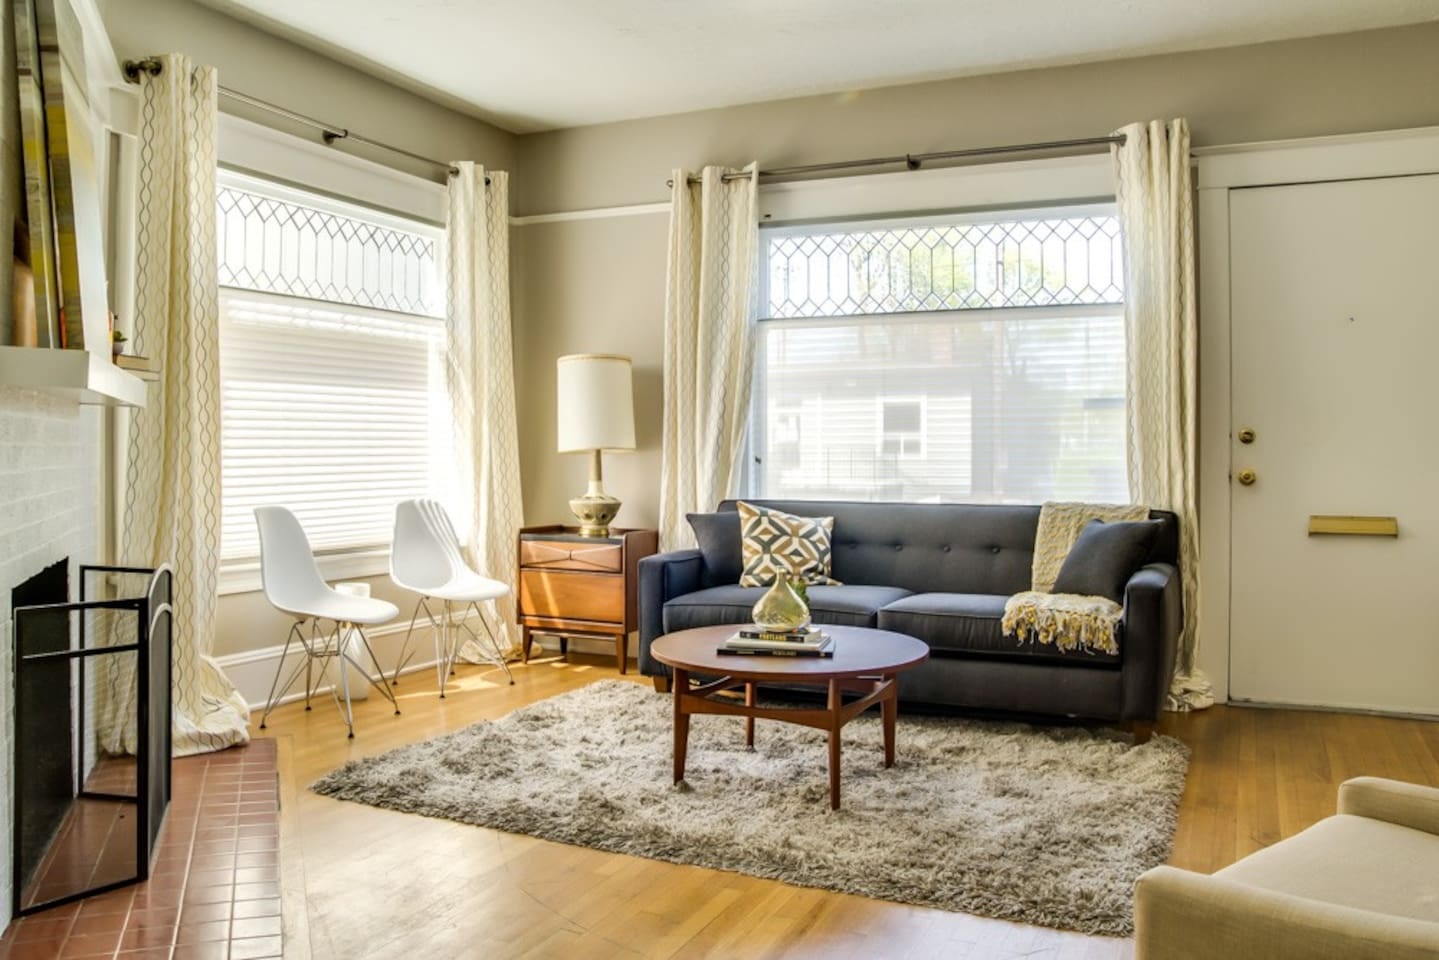 Cooper Spur Suite - Large Urban 2br great location - Apartments for ...